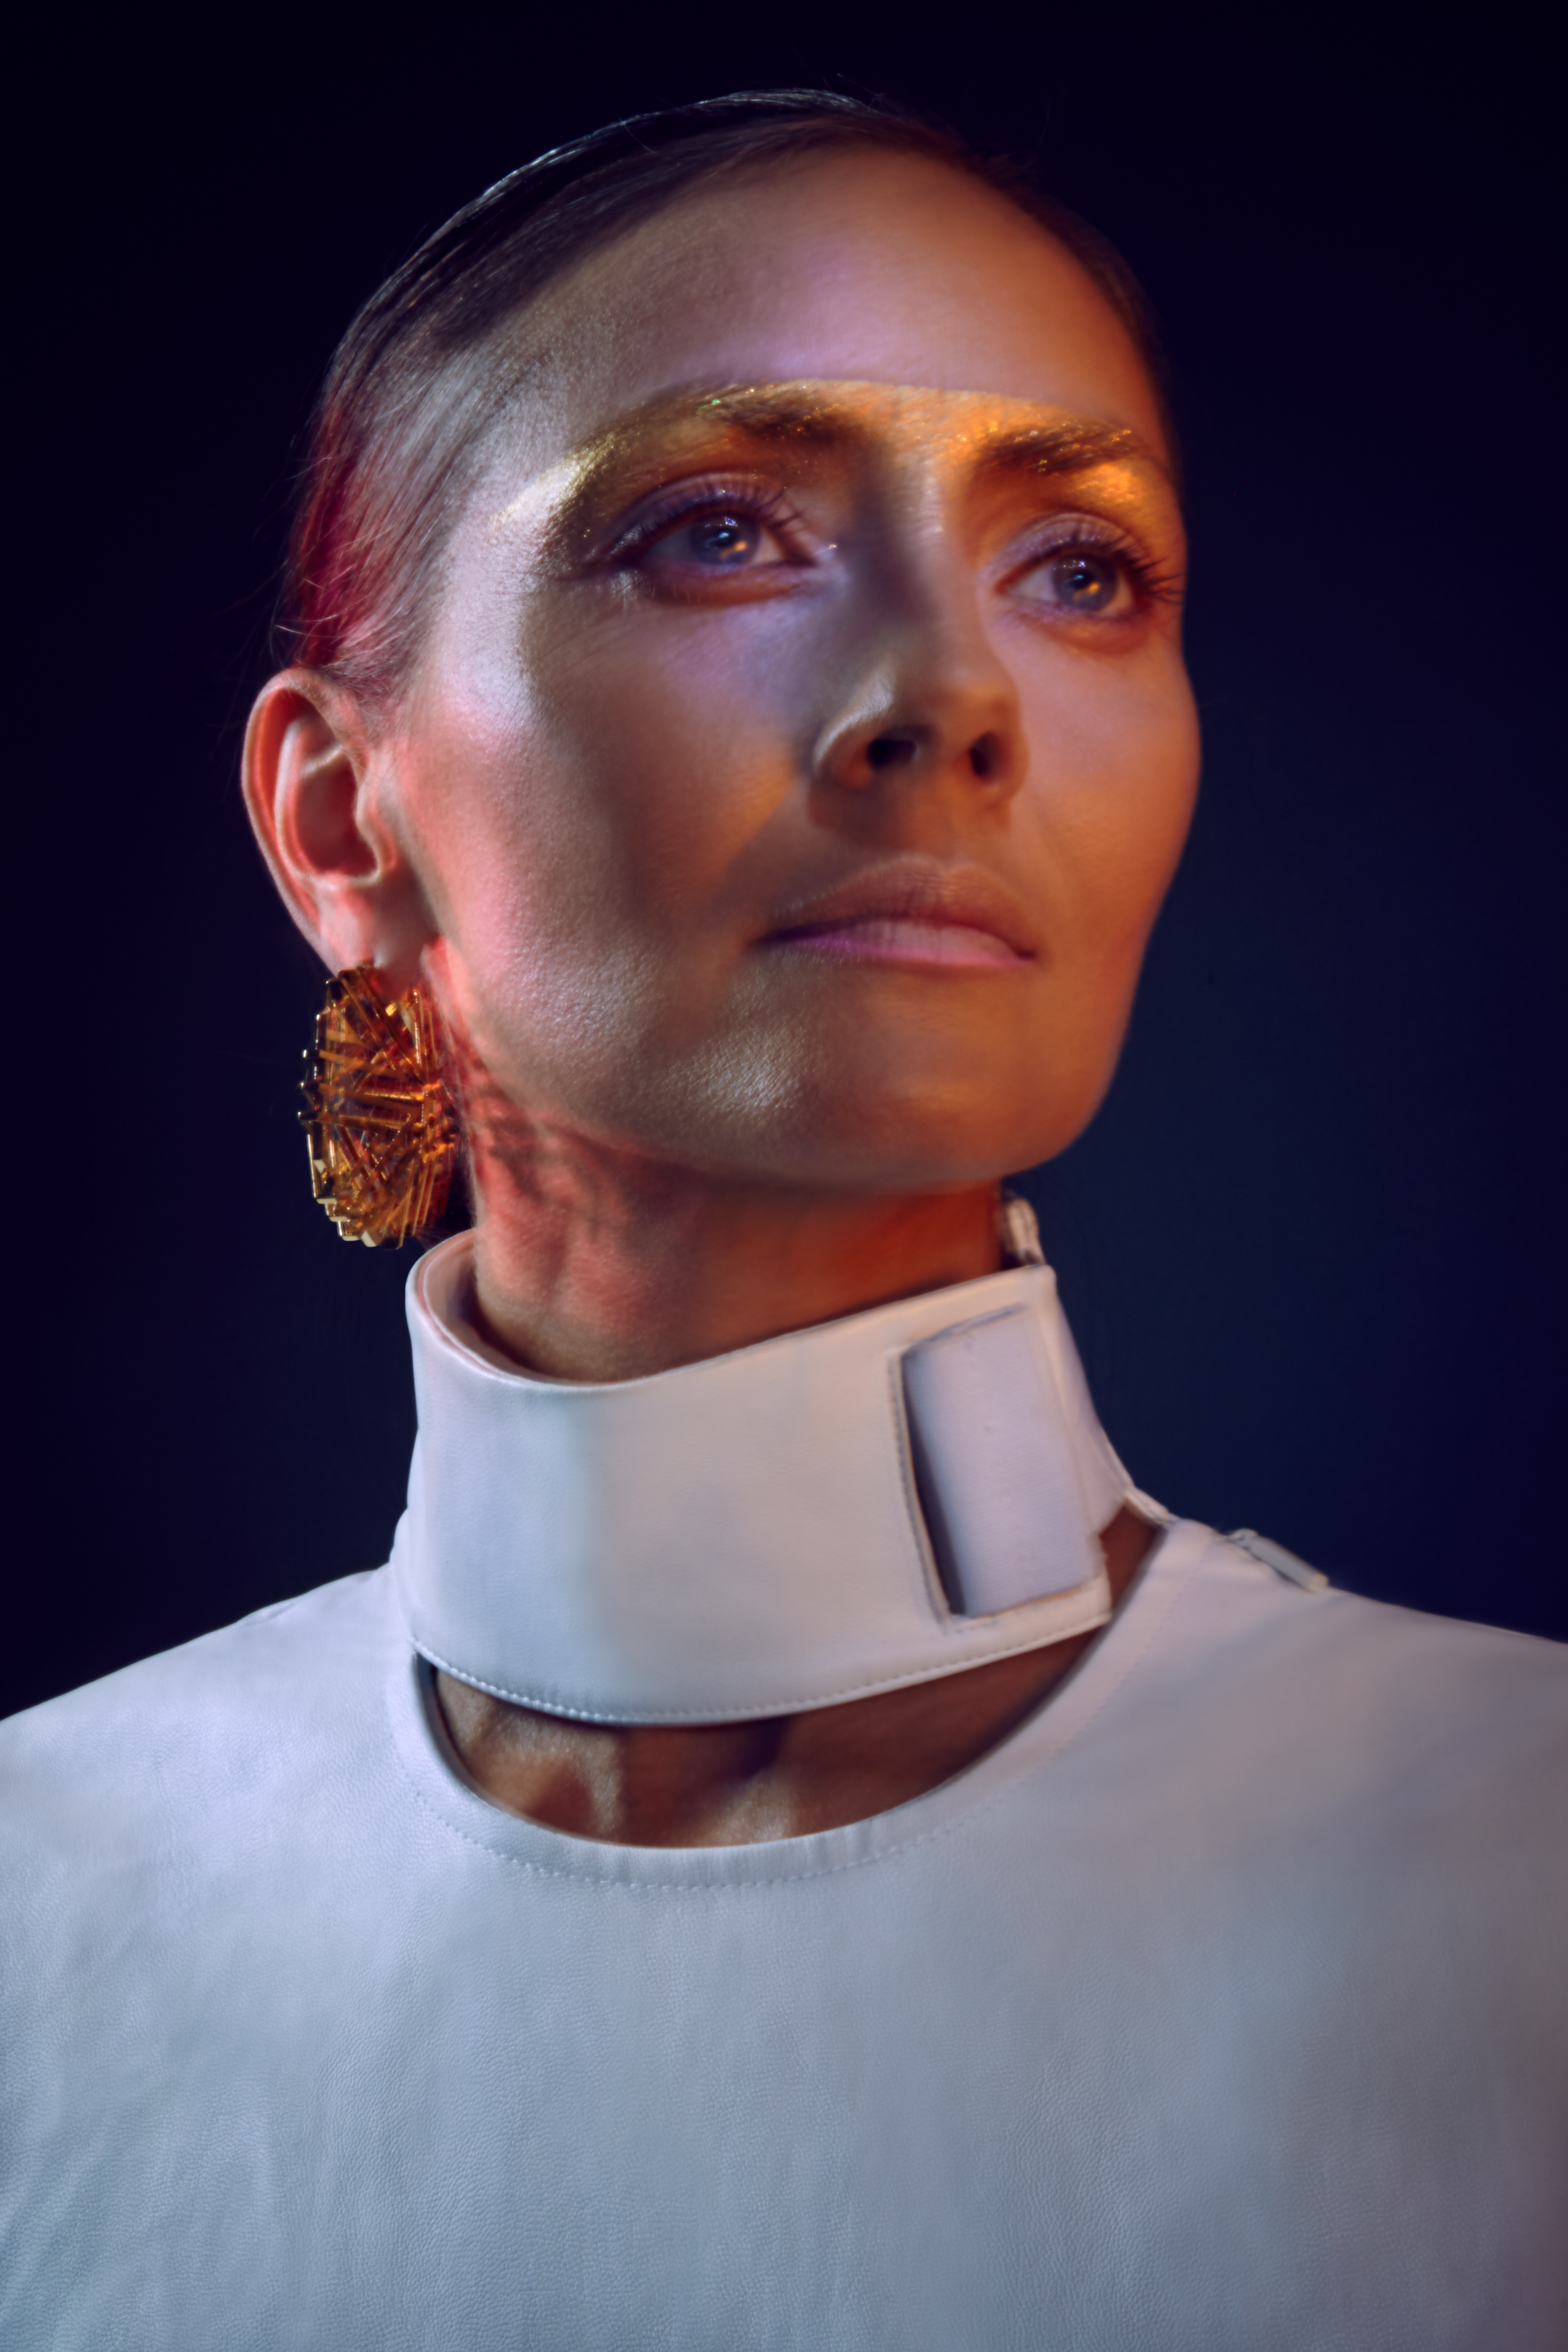 Top by Helter, Earrings by Maria Piana